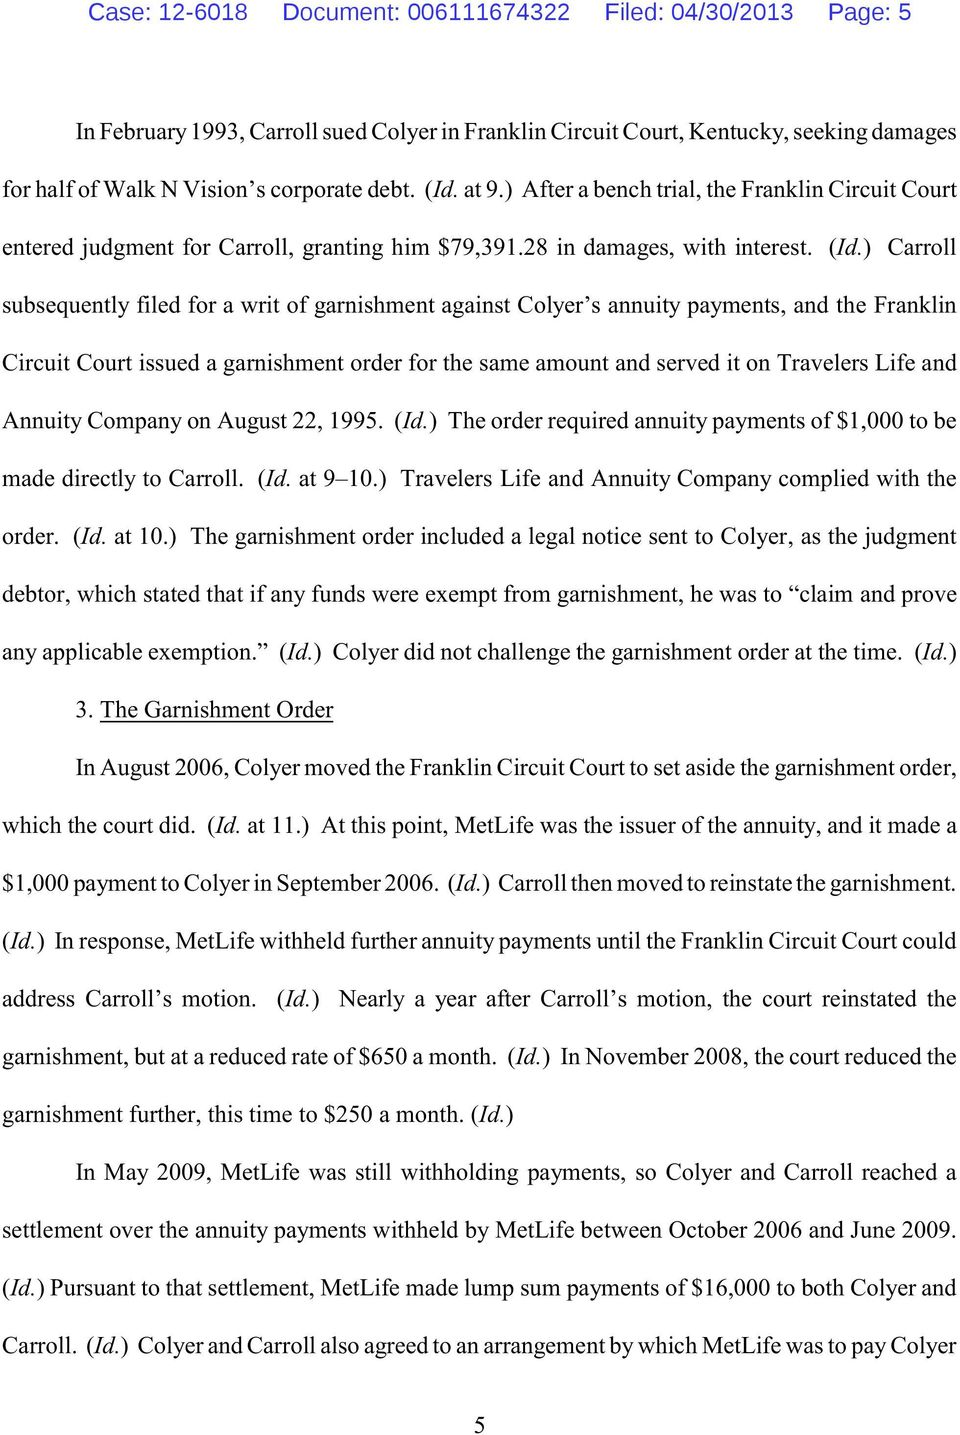 Carroll subsequently filed for a writ of garnishment against Colyer s annuity payments, and the Franklin Circuit Court issued a garnishment order for the same amount and served it on Travelers Life